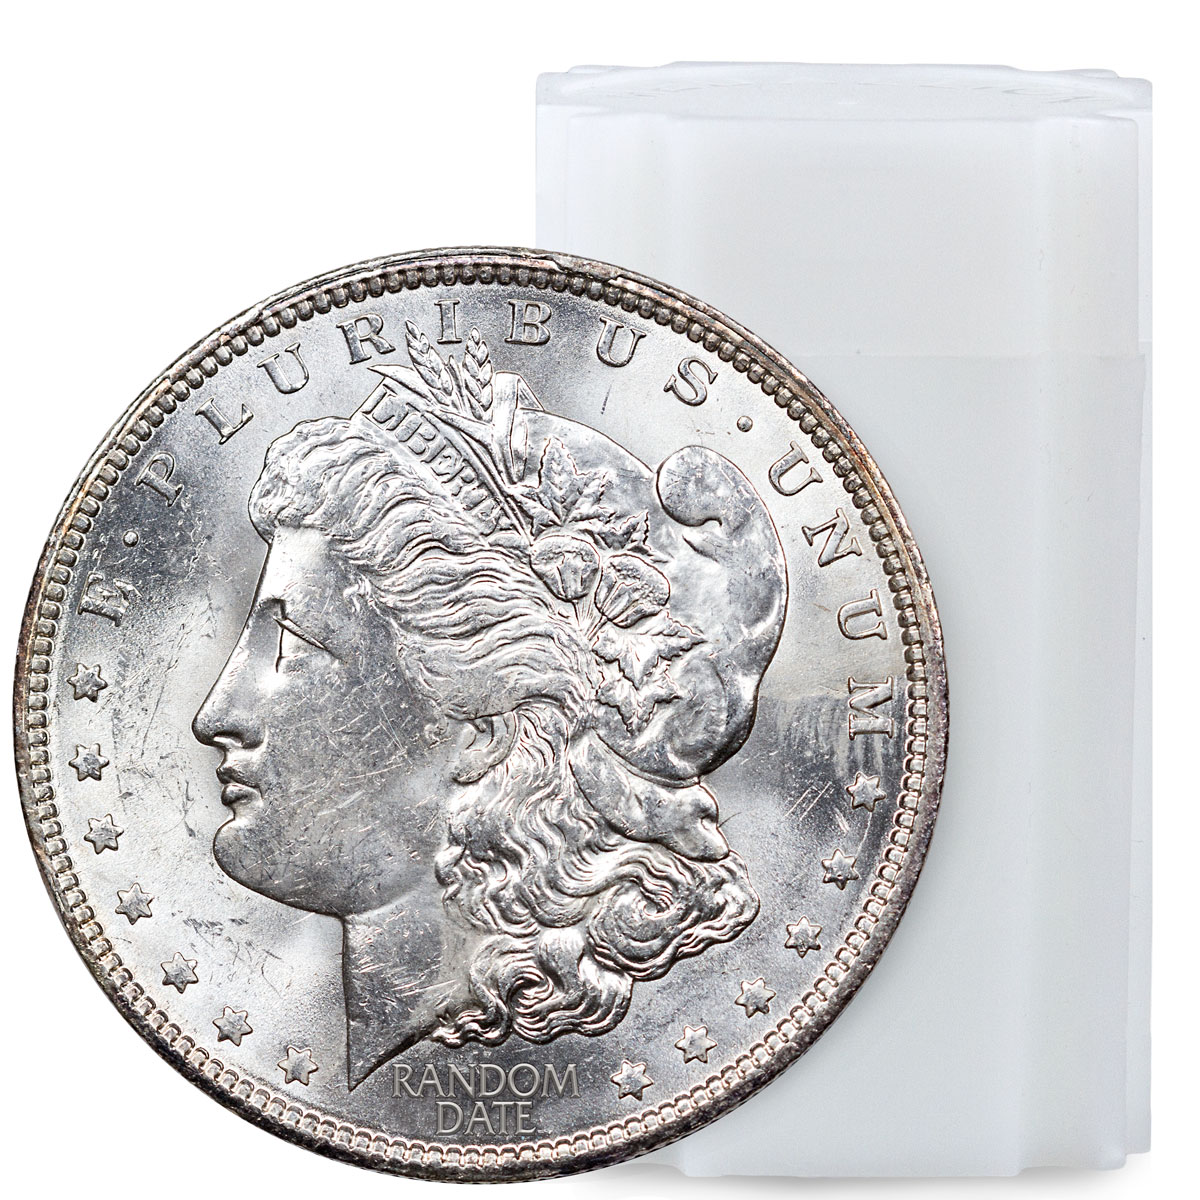 Roll of 20 - 1878-1904 Morgan Silver Dollar BU